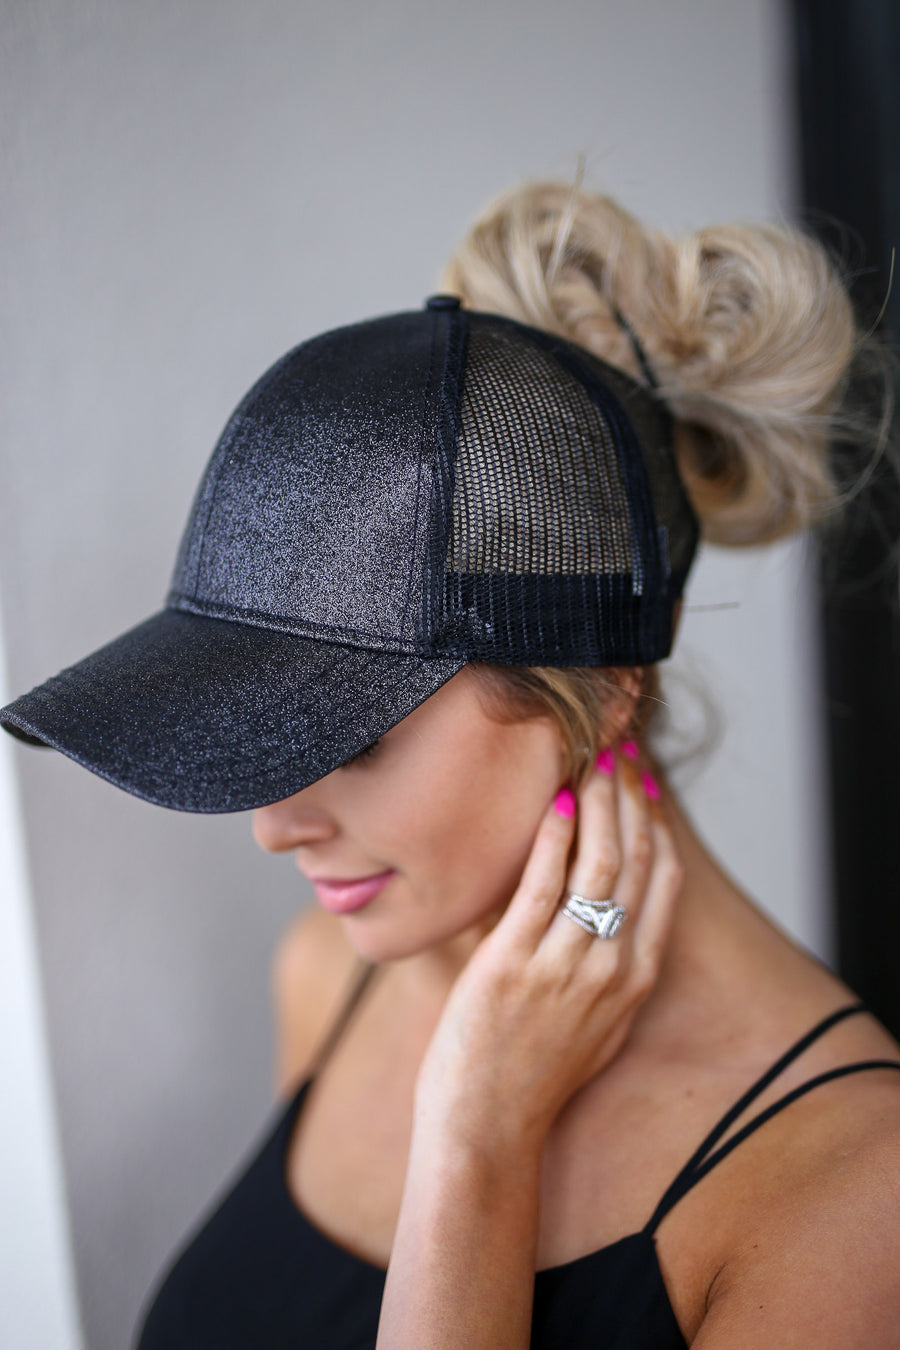 Sprinkle Some Glitter Ponytail Hats - pink, black, gold sparkly cutout baseball cap, sheer panels, top bun, high ponytail, closet candy boutique 1